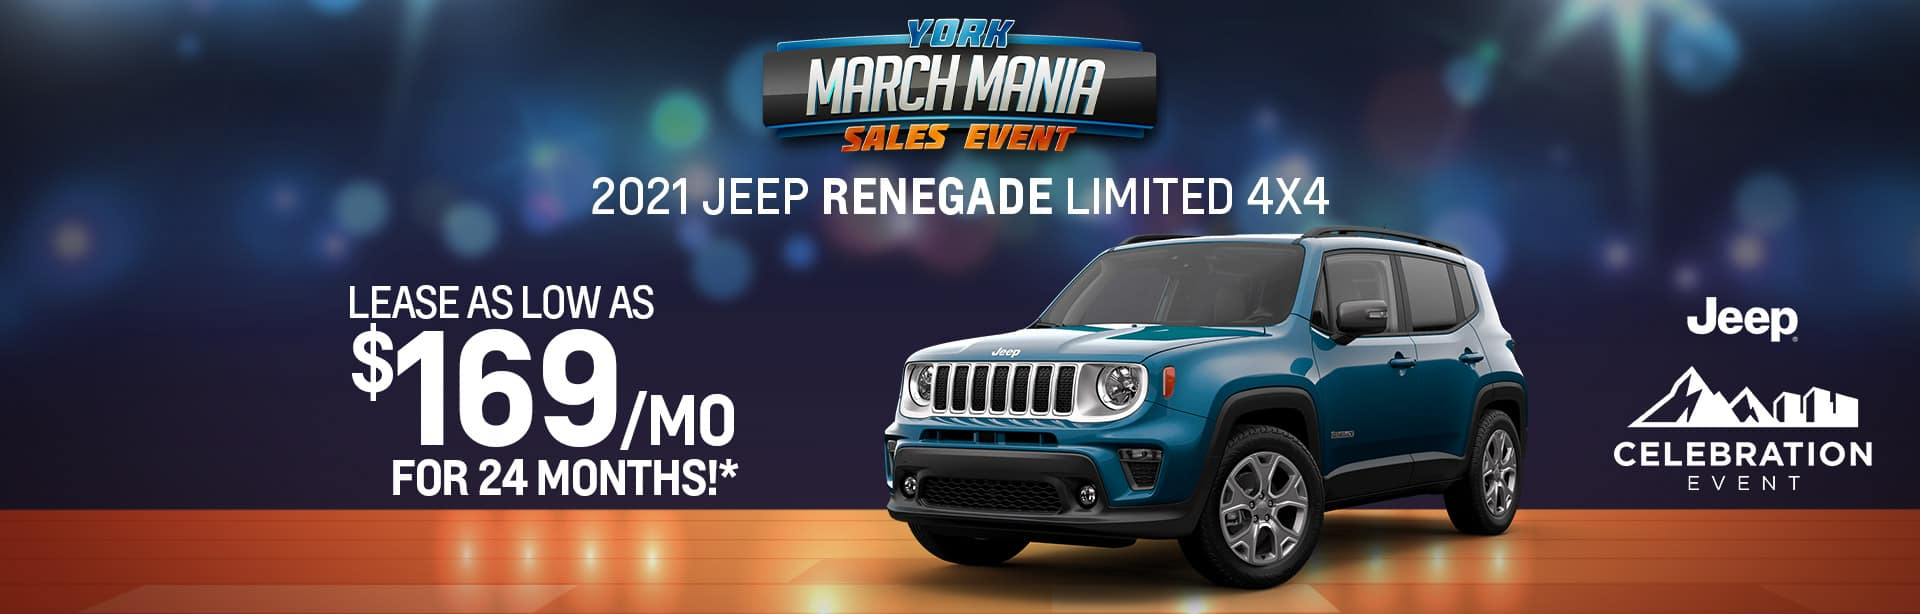 Best lease offer on a 2021 Renegade near Indianapolis IN